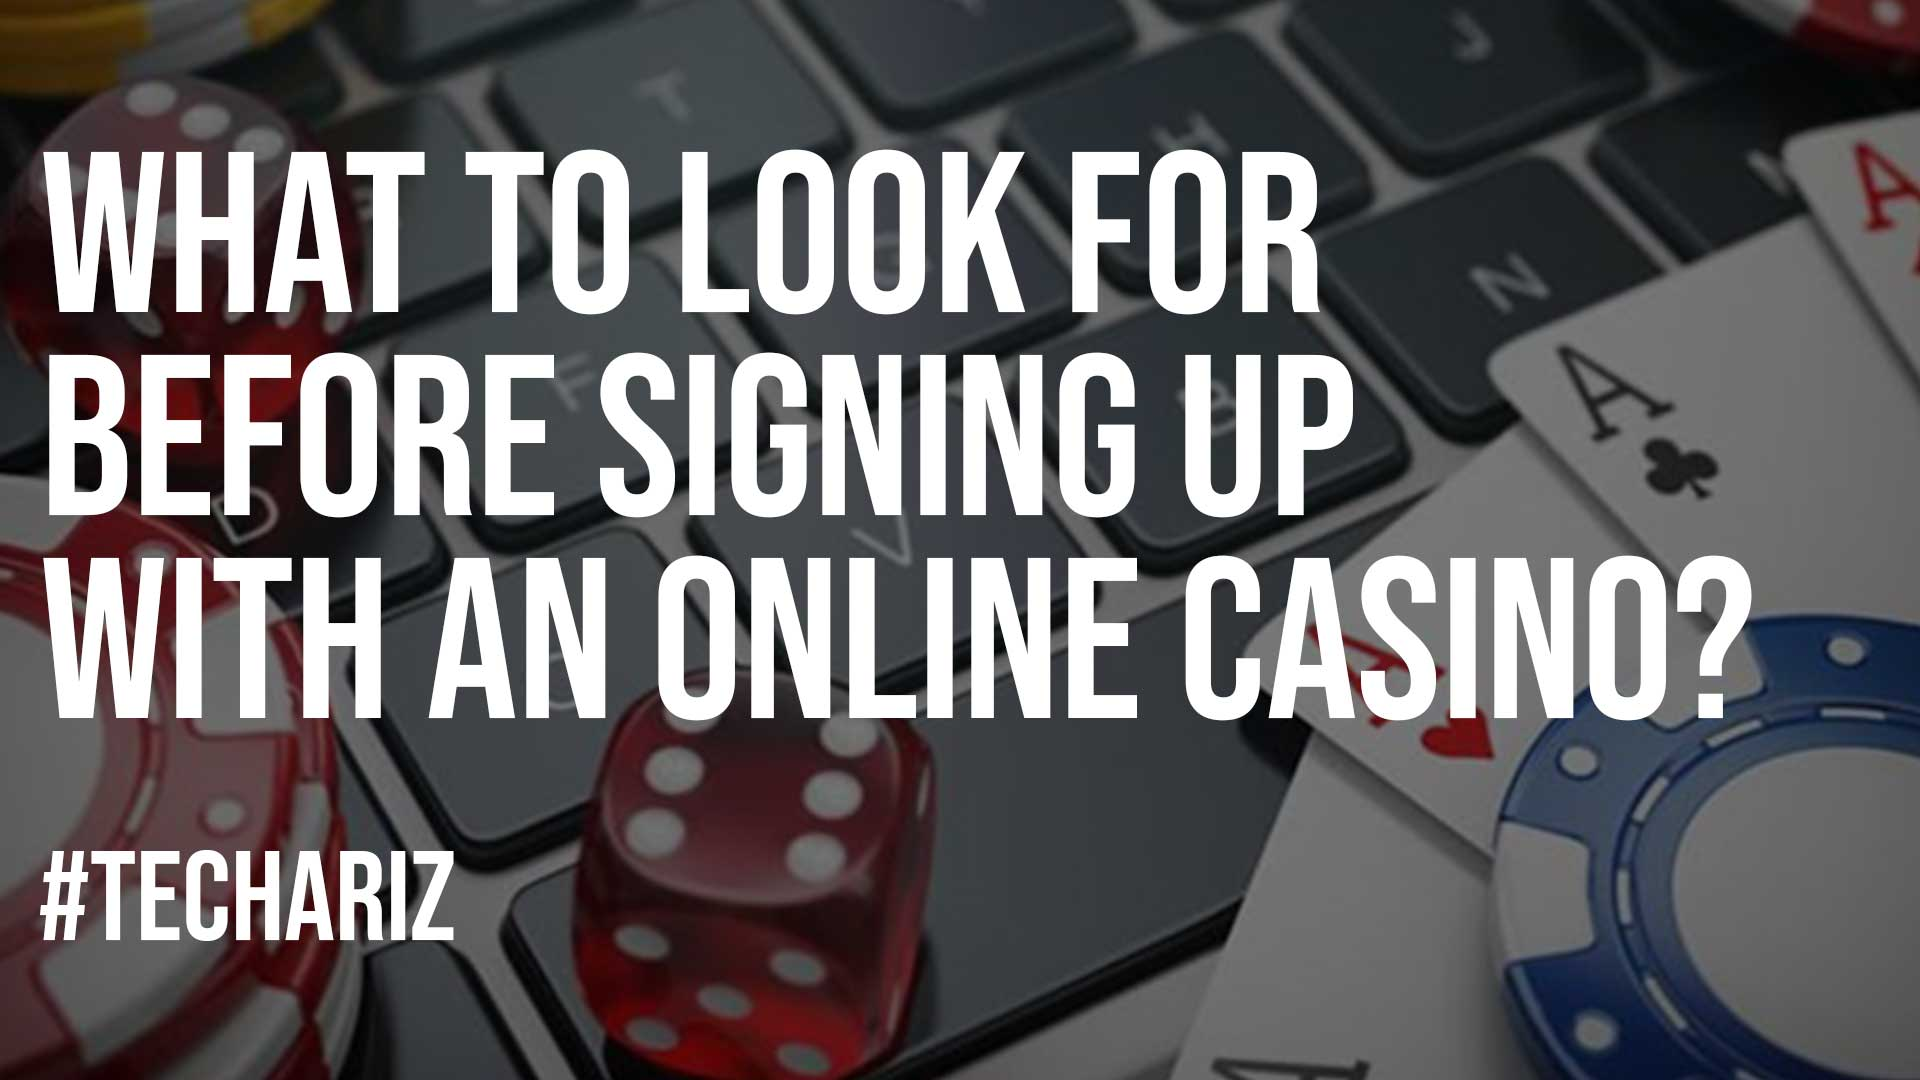 What to Look for Before Signing Up With an Online Casino